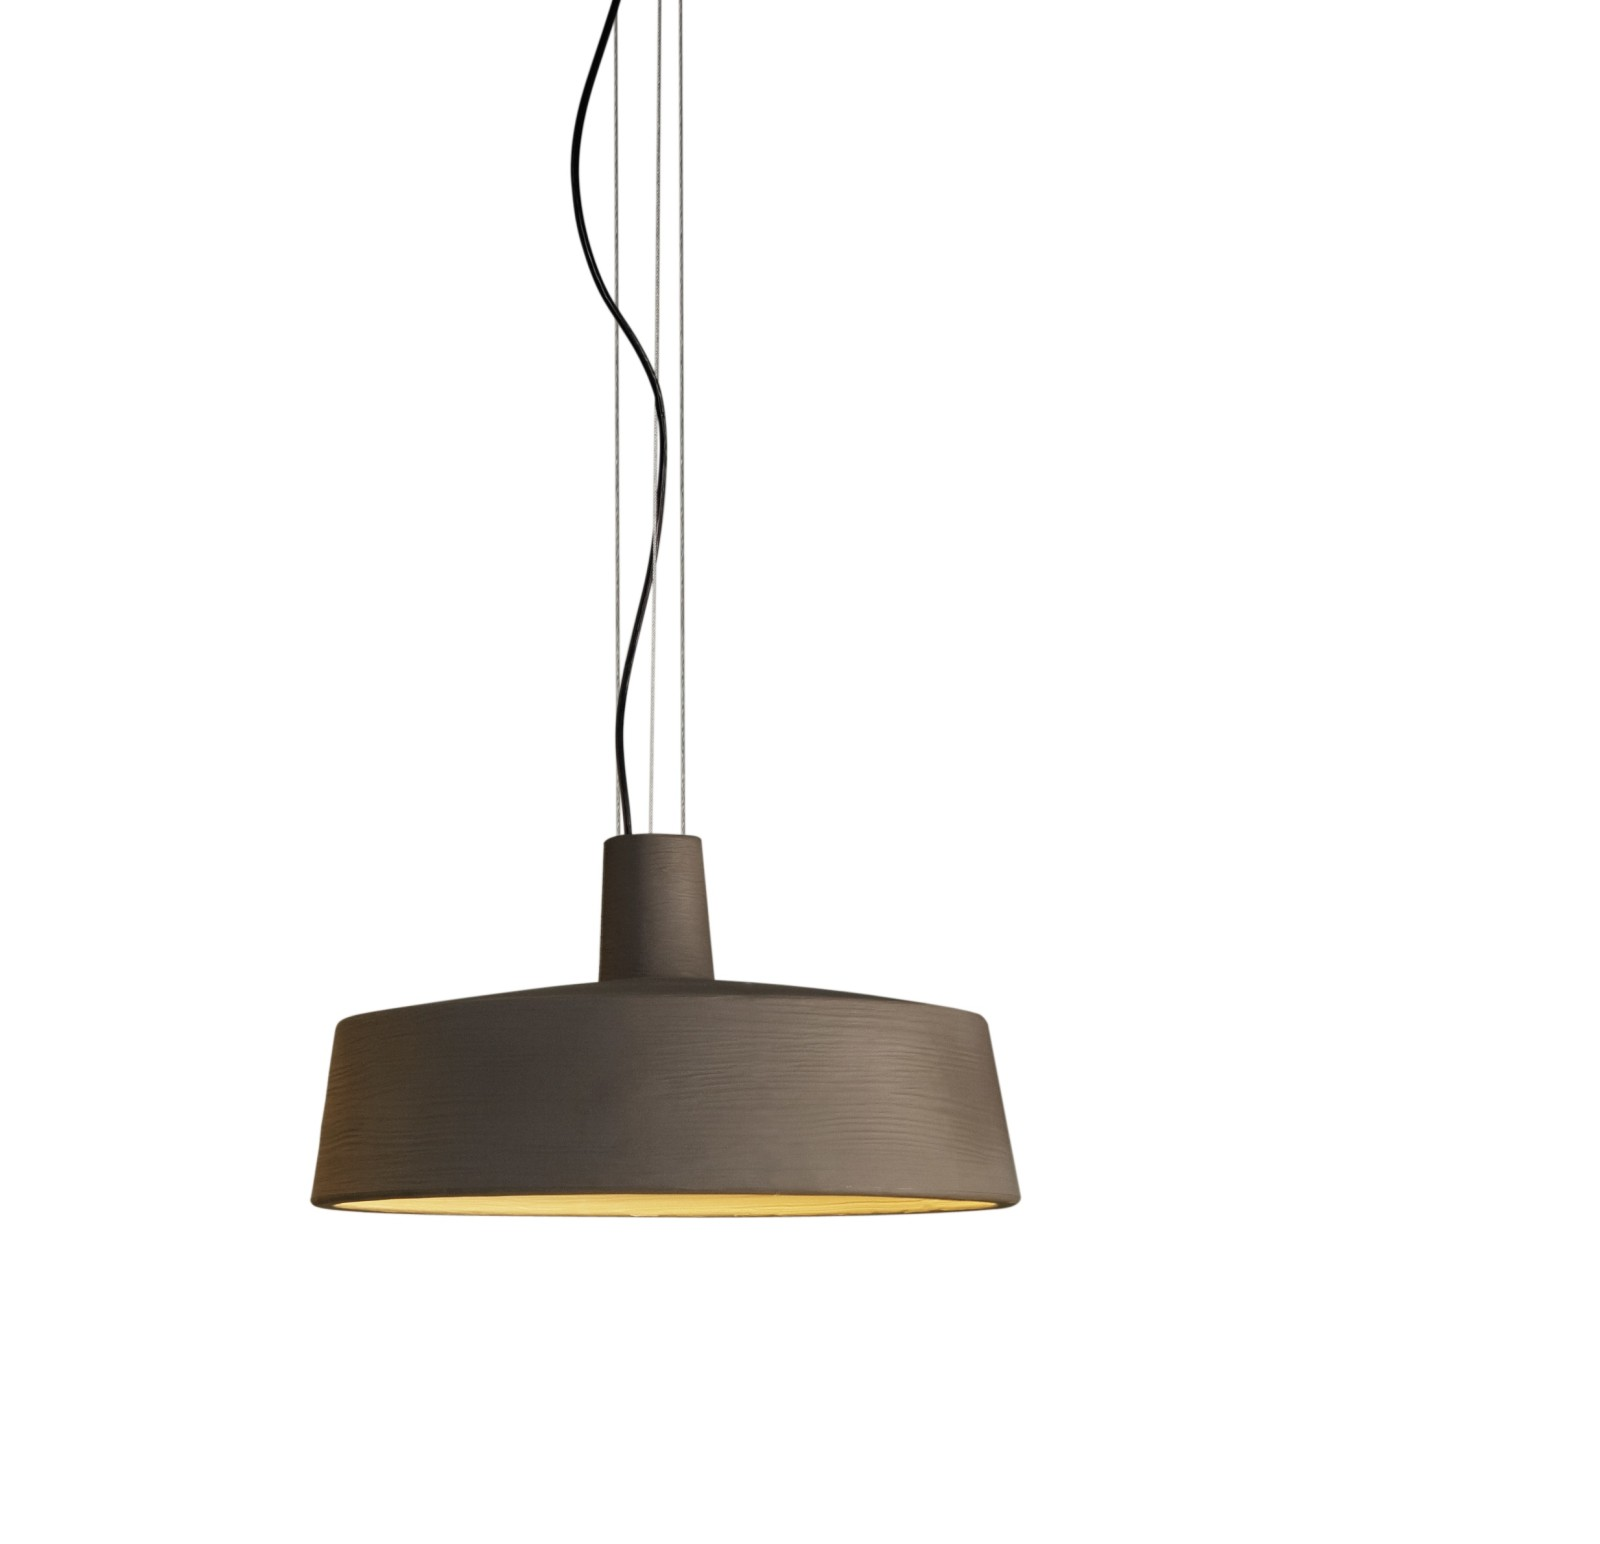 Soho Pendant Light - LED Marset - Stone Grey, Triac